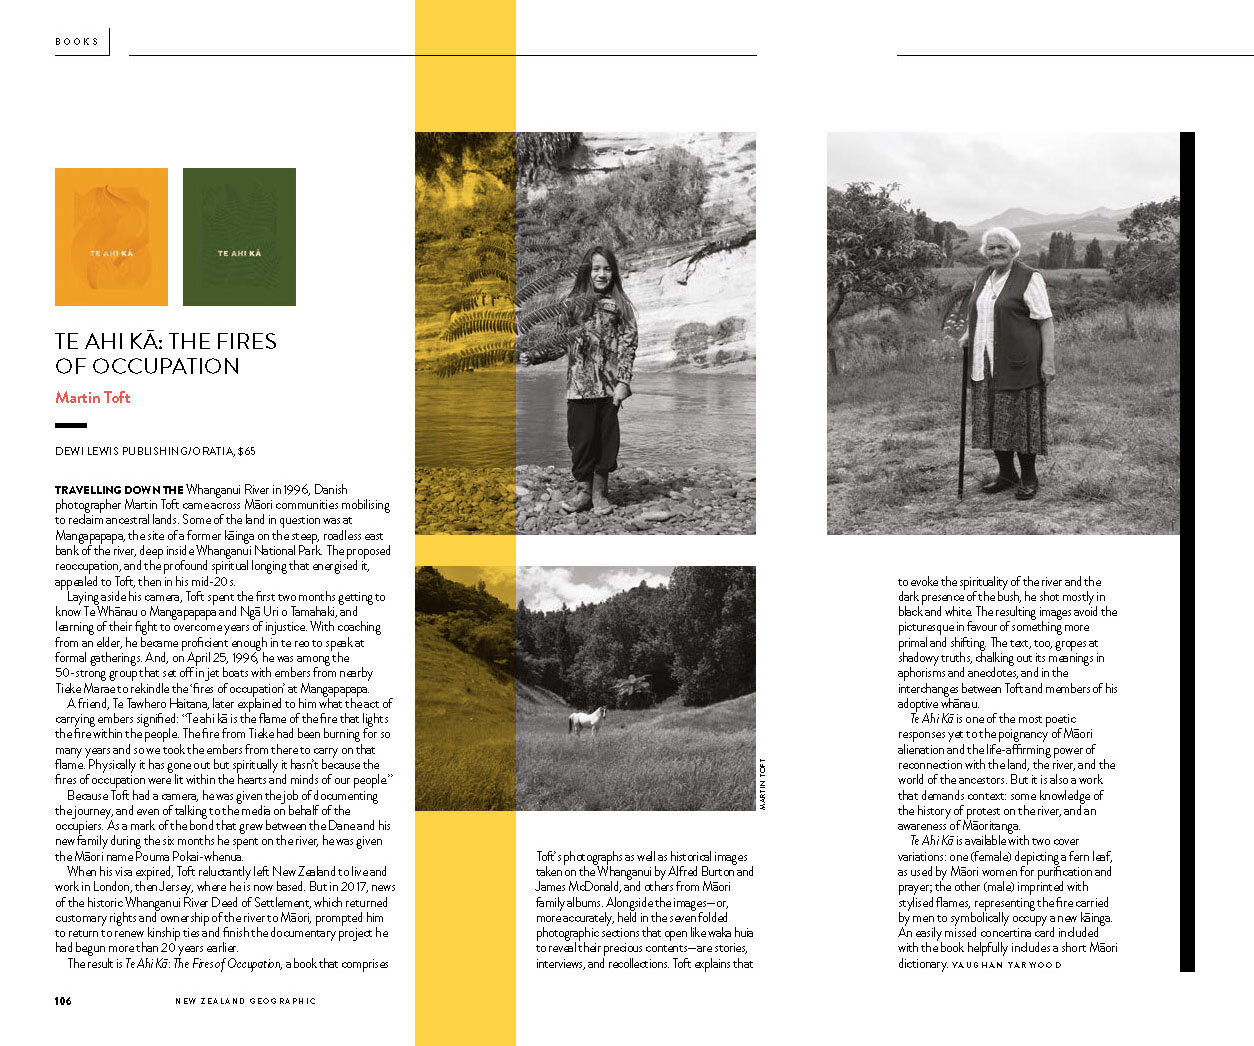 NZ Geographic books pages Jul_Aug 19 issue_Te Ahi Kaa_Page_1.jpg